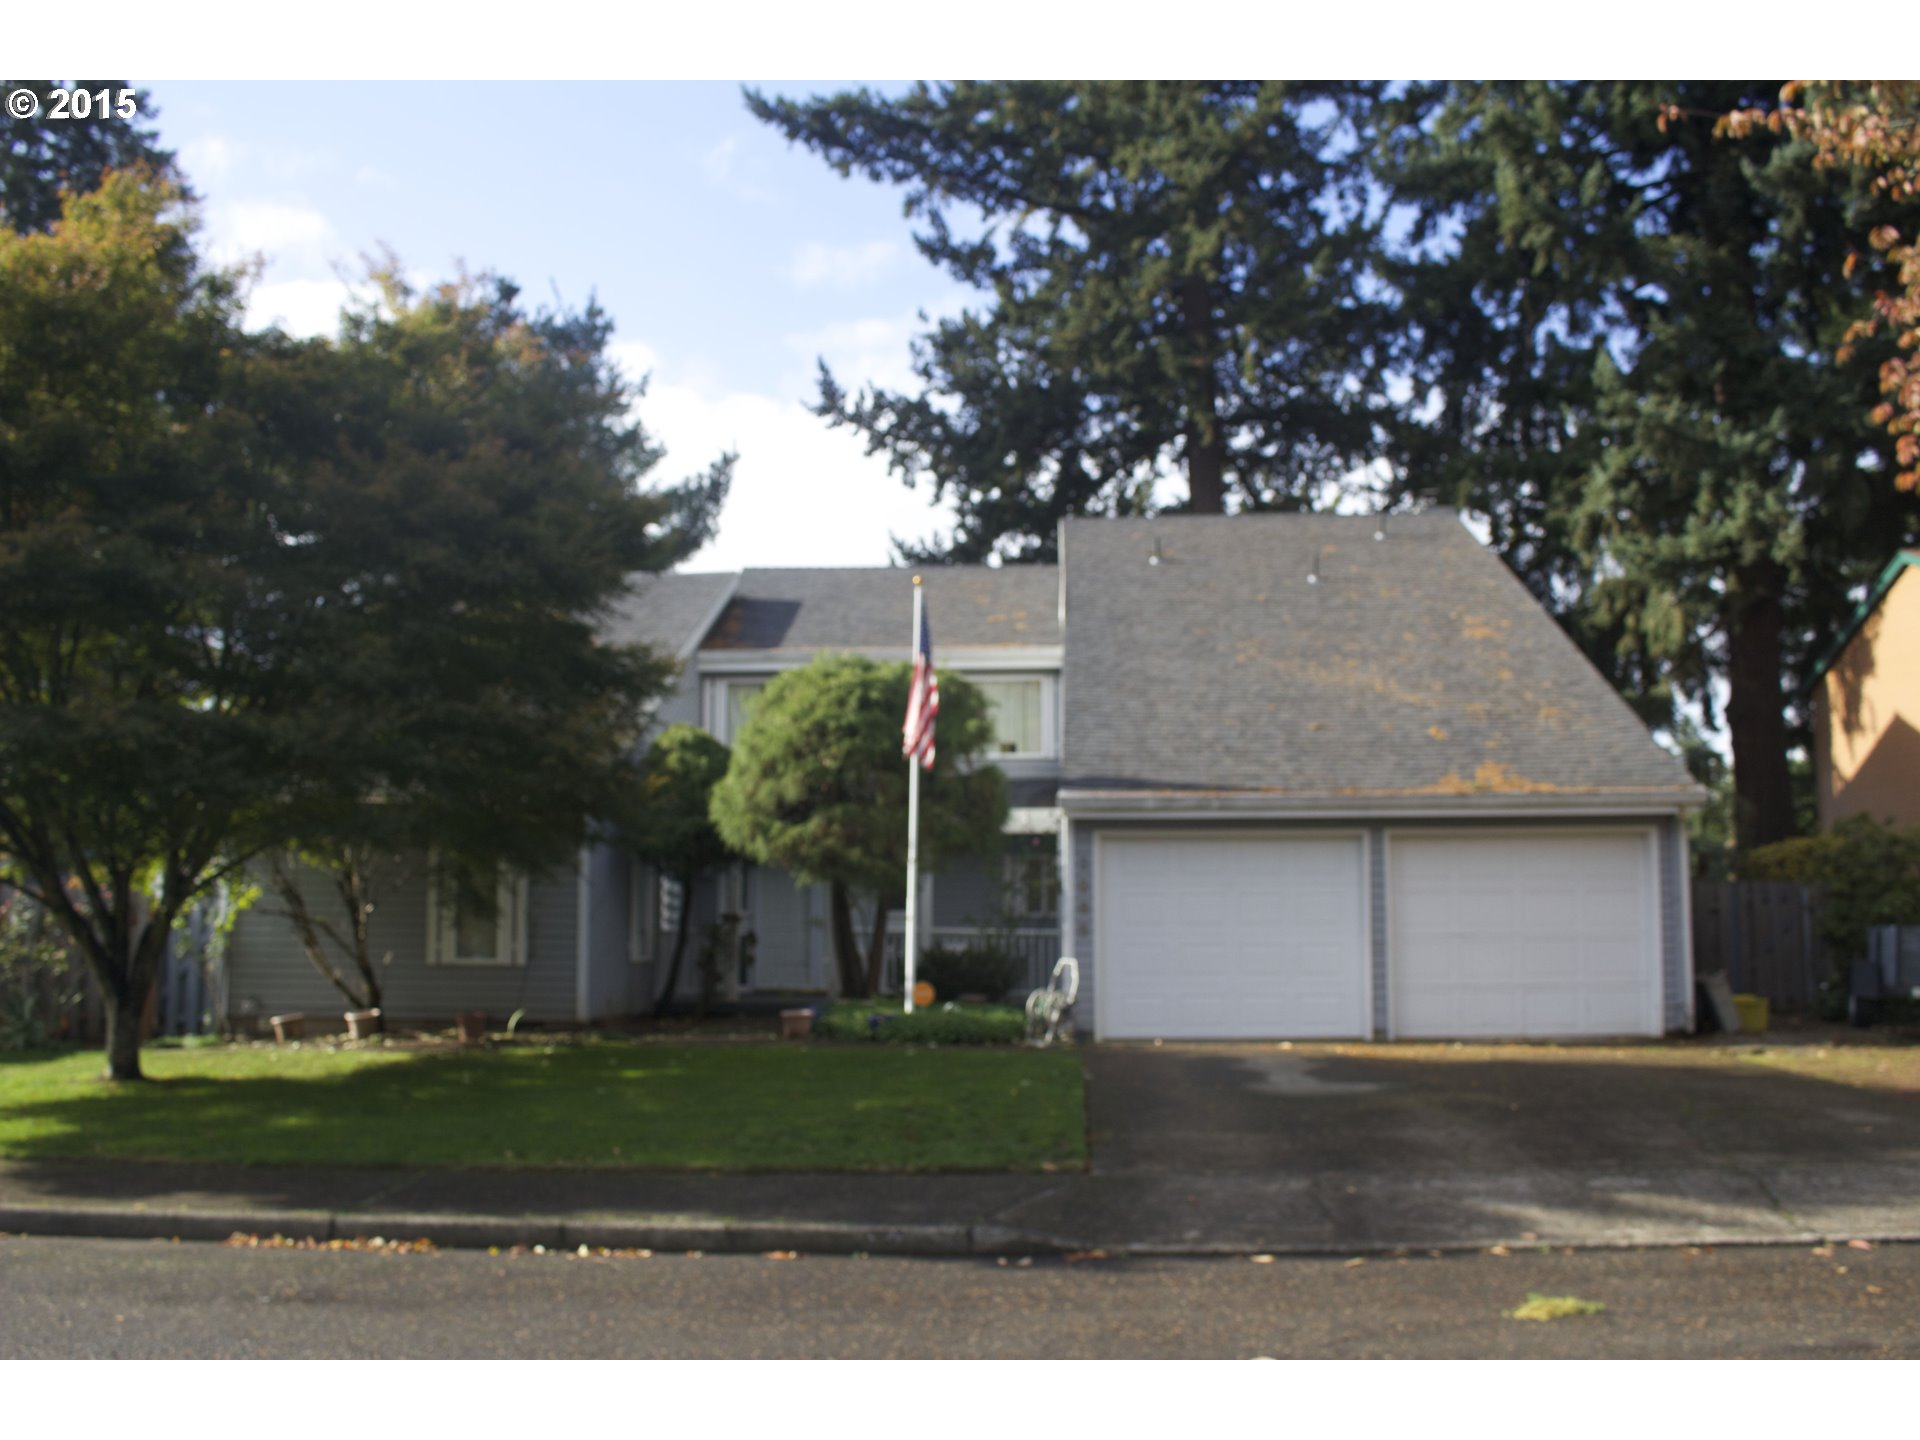 1265 N Oak St, Canby, OR